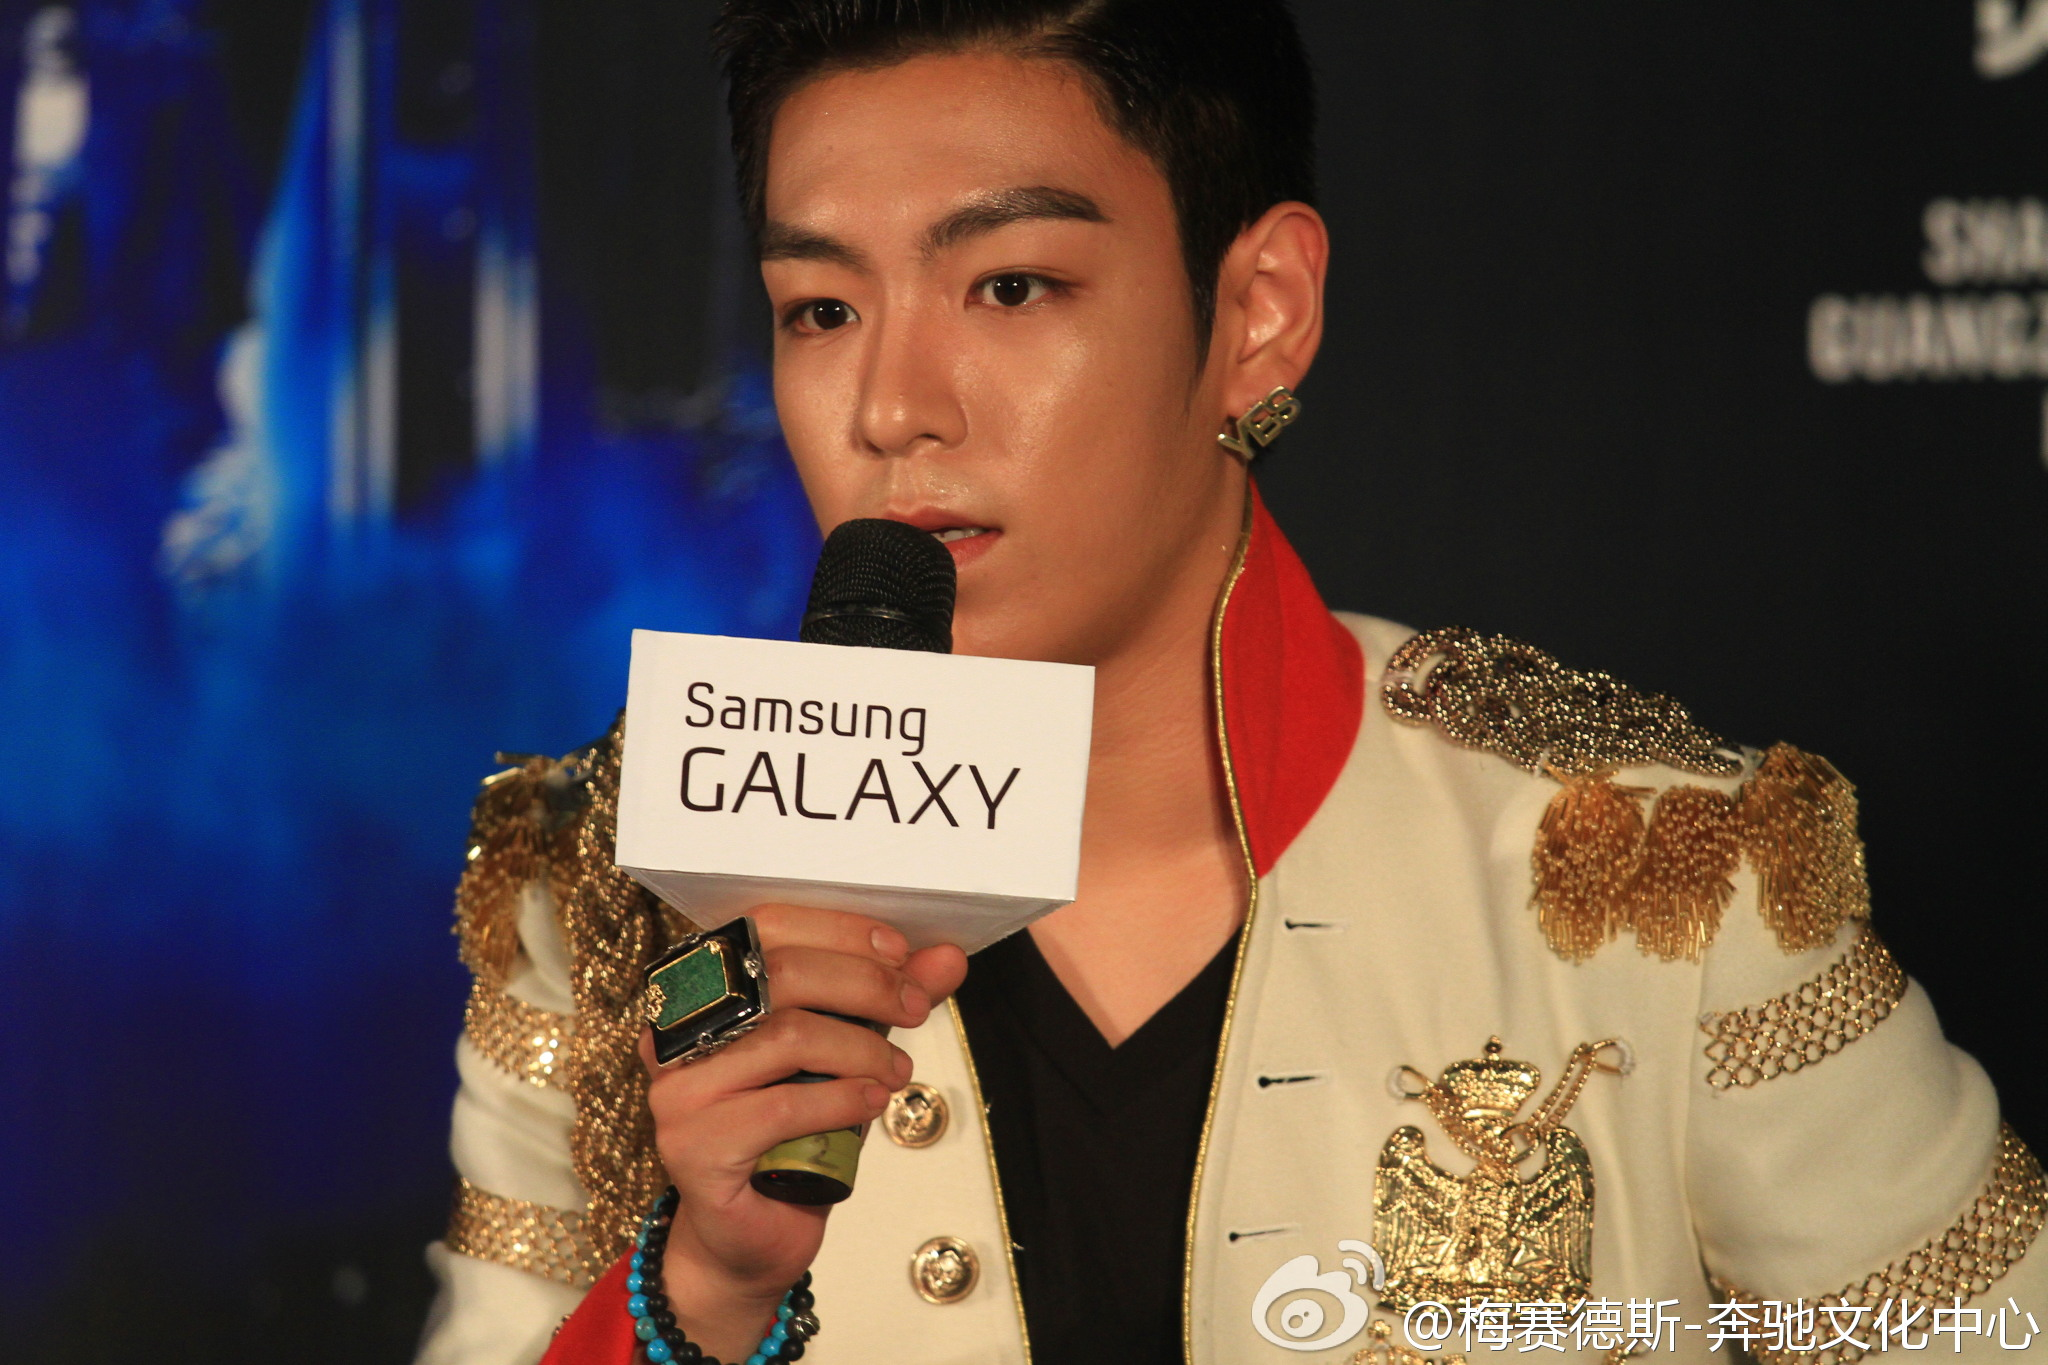 T.O.P at Samsung Galaxy [BIGABANG ALIVE GALAXY TOUR 2012 in Shanghai] press conference http://t.co/5gEfPjWa